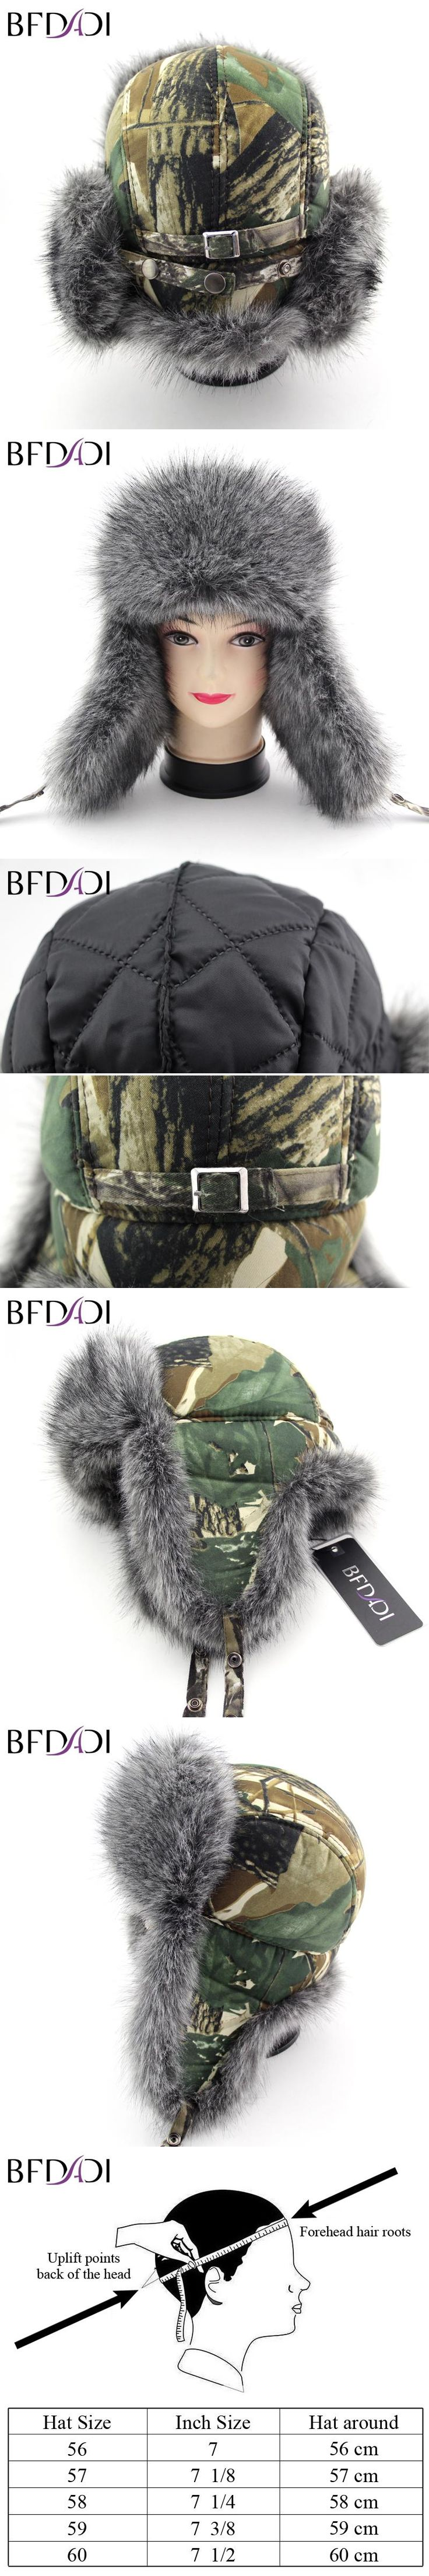 BFDADI 2017 Bomber Camouflage Cap Winter Trapper Hats Faux Fur Windproof Winter Snow Hat Ear Flaps Russian Military Caps